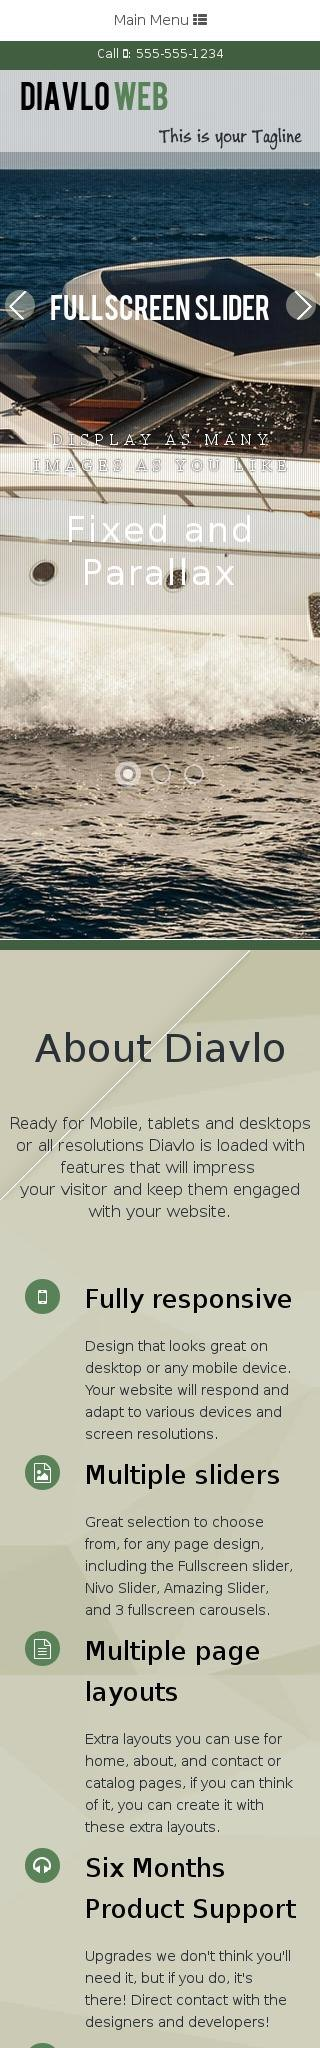 Mobile: Boating Web Template